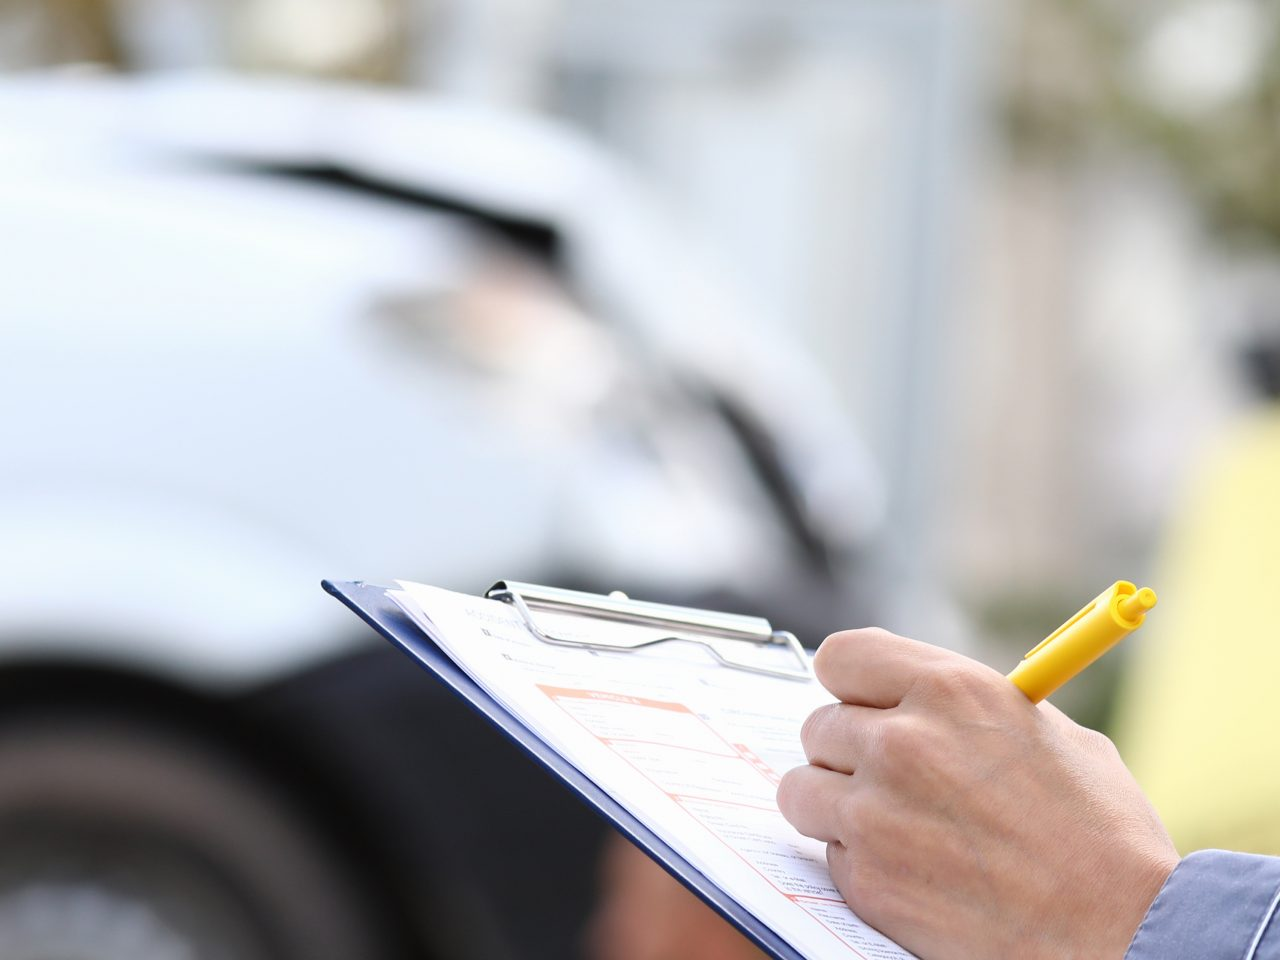 An agent fills out paperwork after car accident. Vehicle insurance concept